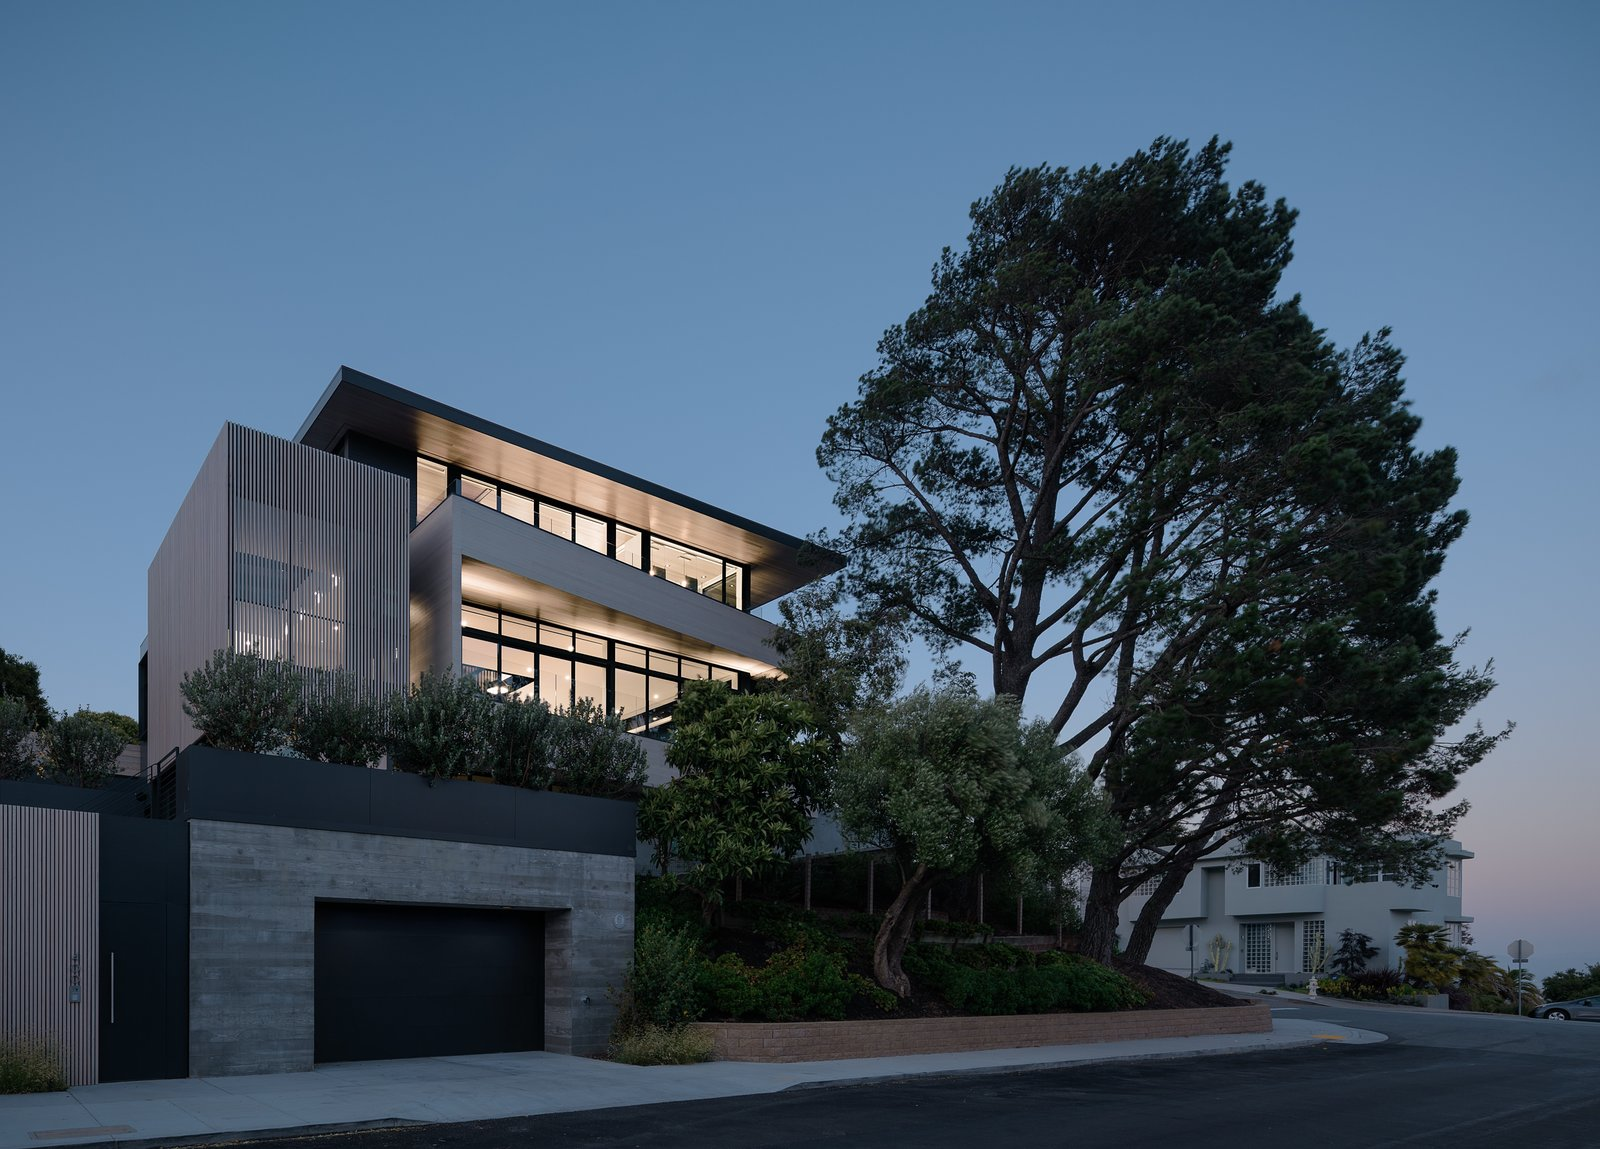 Exterior, Flat RoofLine, House Building Type, Concrete Siding Material, Wood Siding Material, Metal Roof Material, Glass Siding Material, and Metal Siding Material Exterior at Dusk  Dolores Heights Residence I by John Maniscalco Architecture